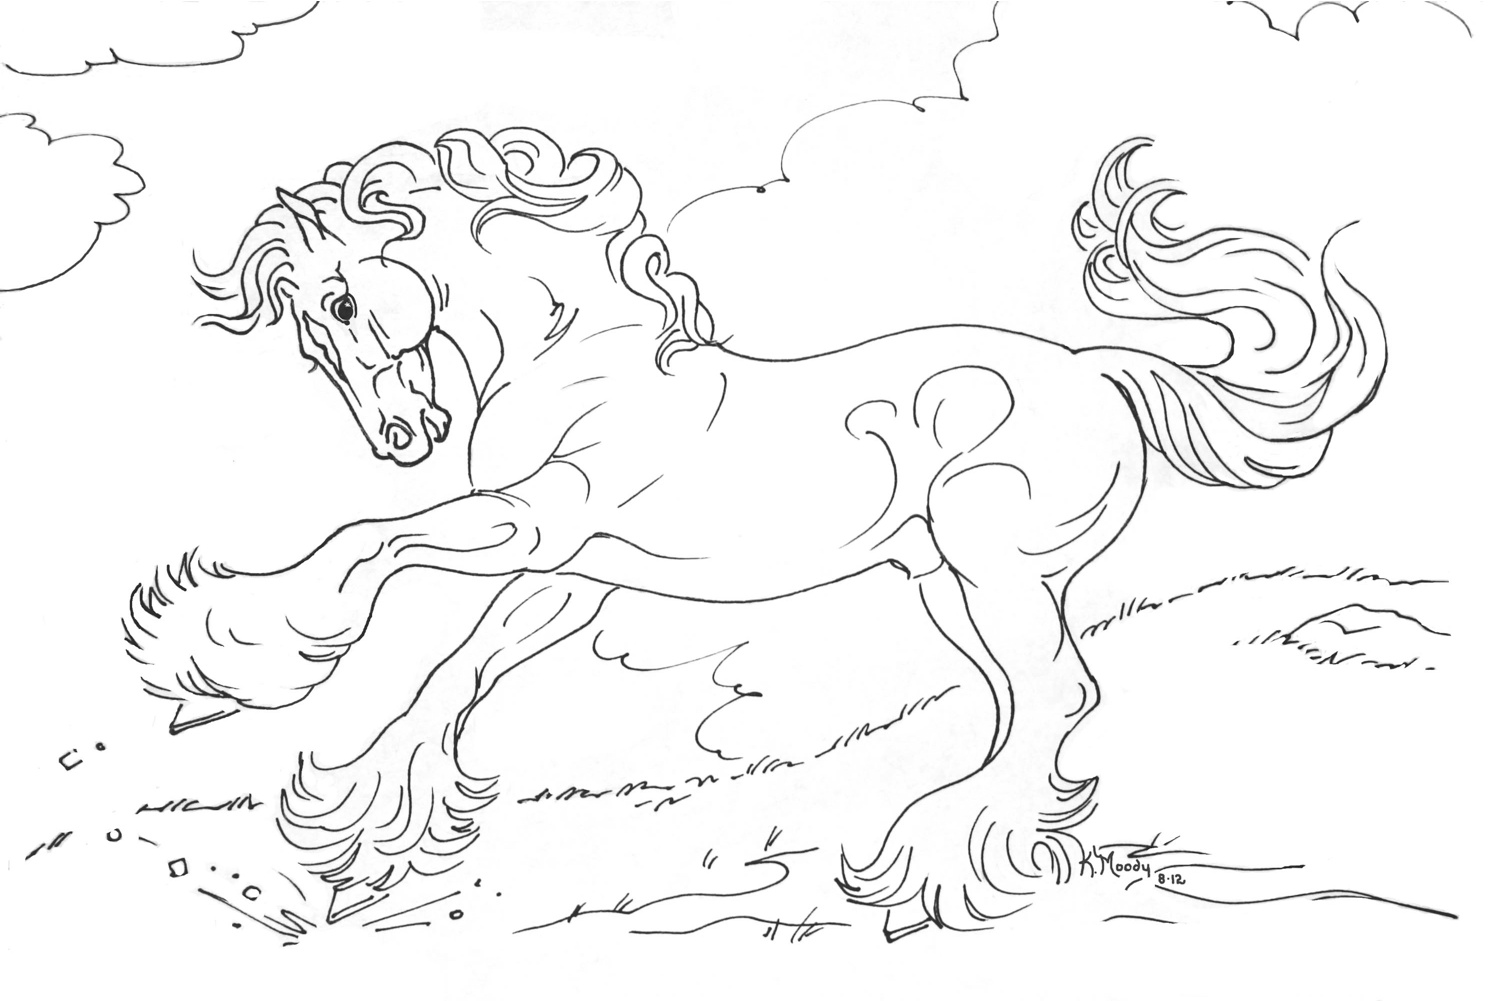 Horse Coloring Pages For Kids at GetDrawings.com | Free for personal ...